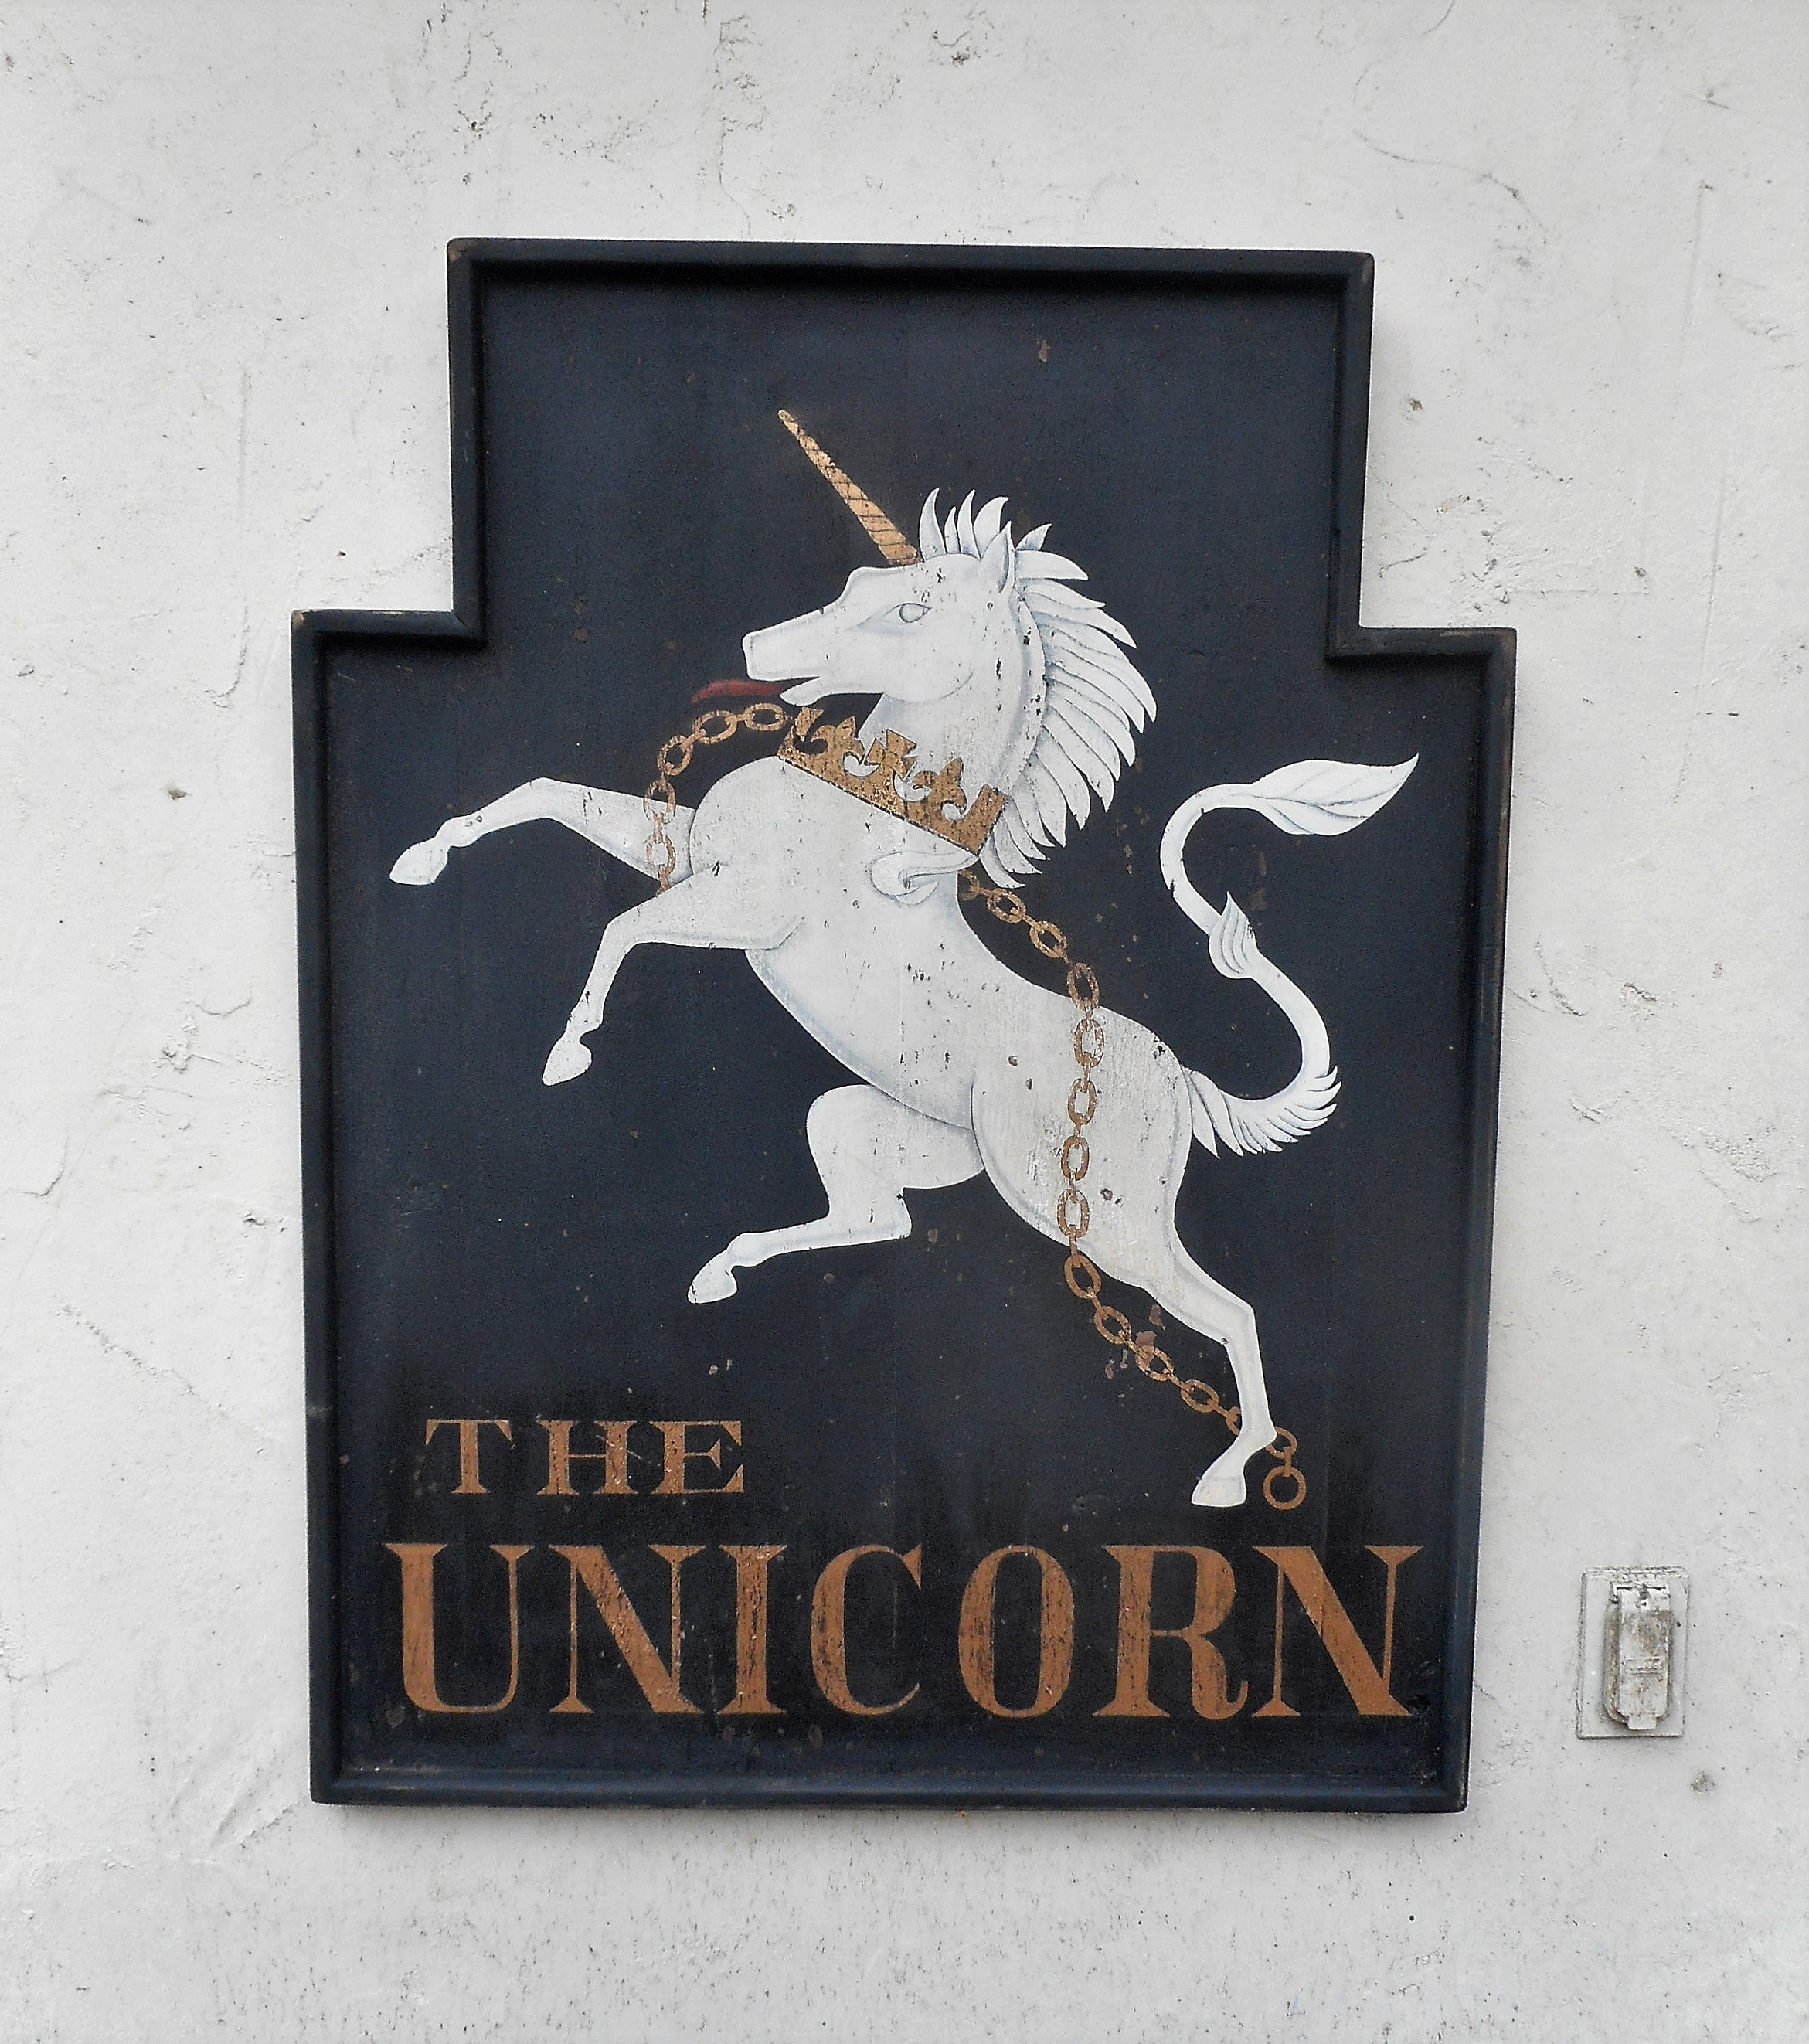 """The Unicorn"" Pub sign"